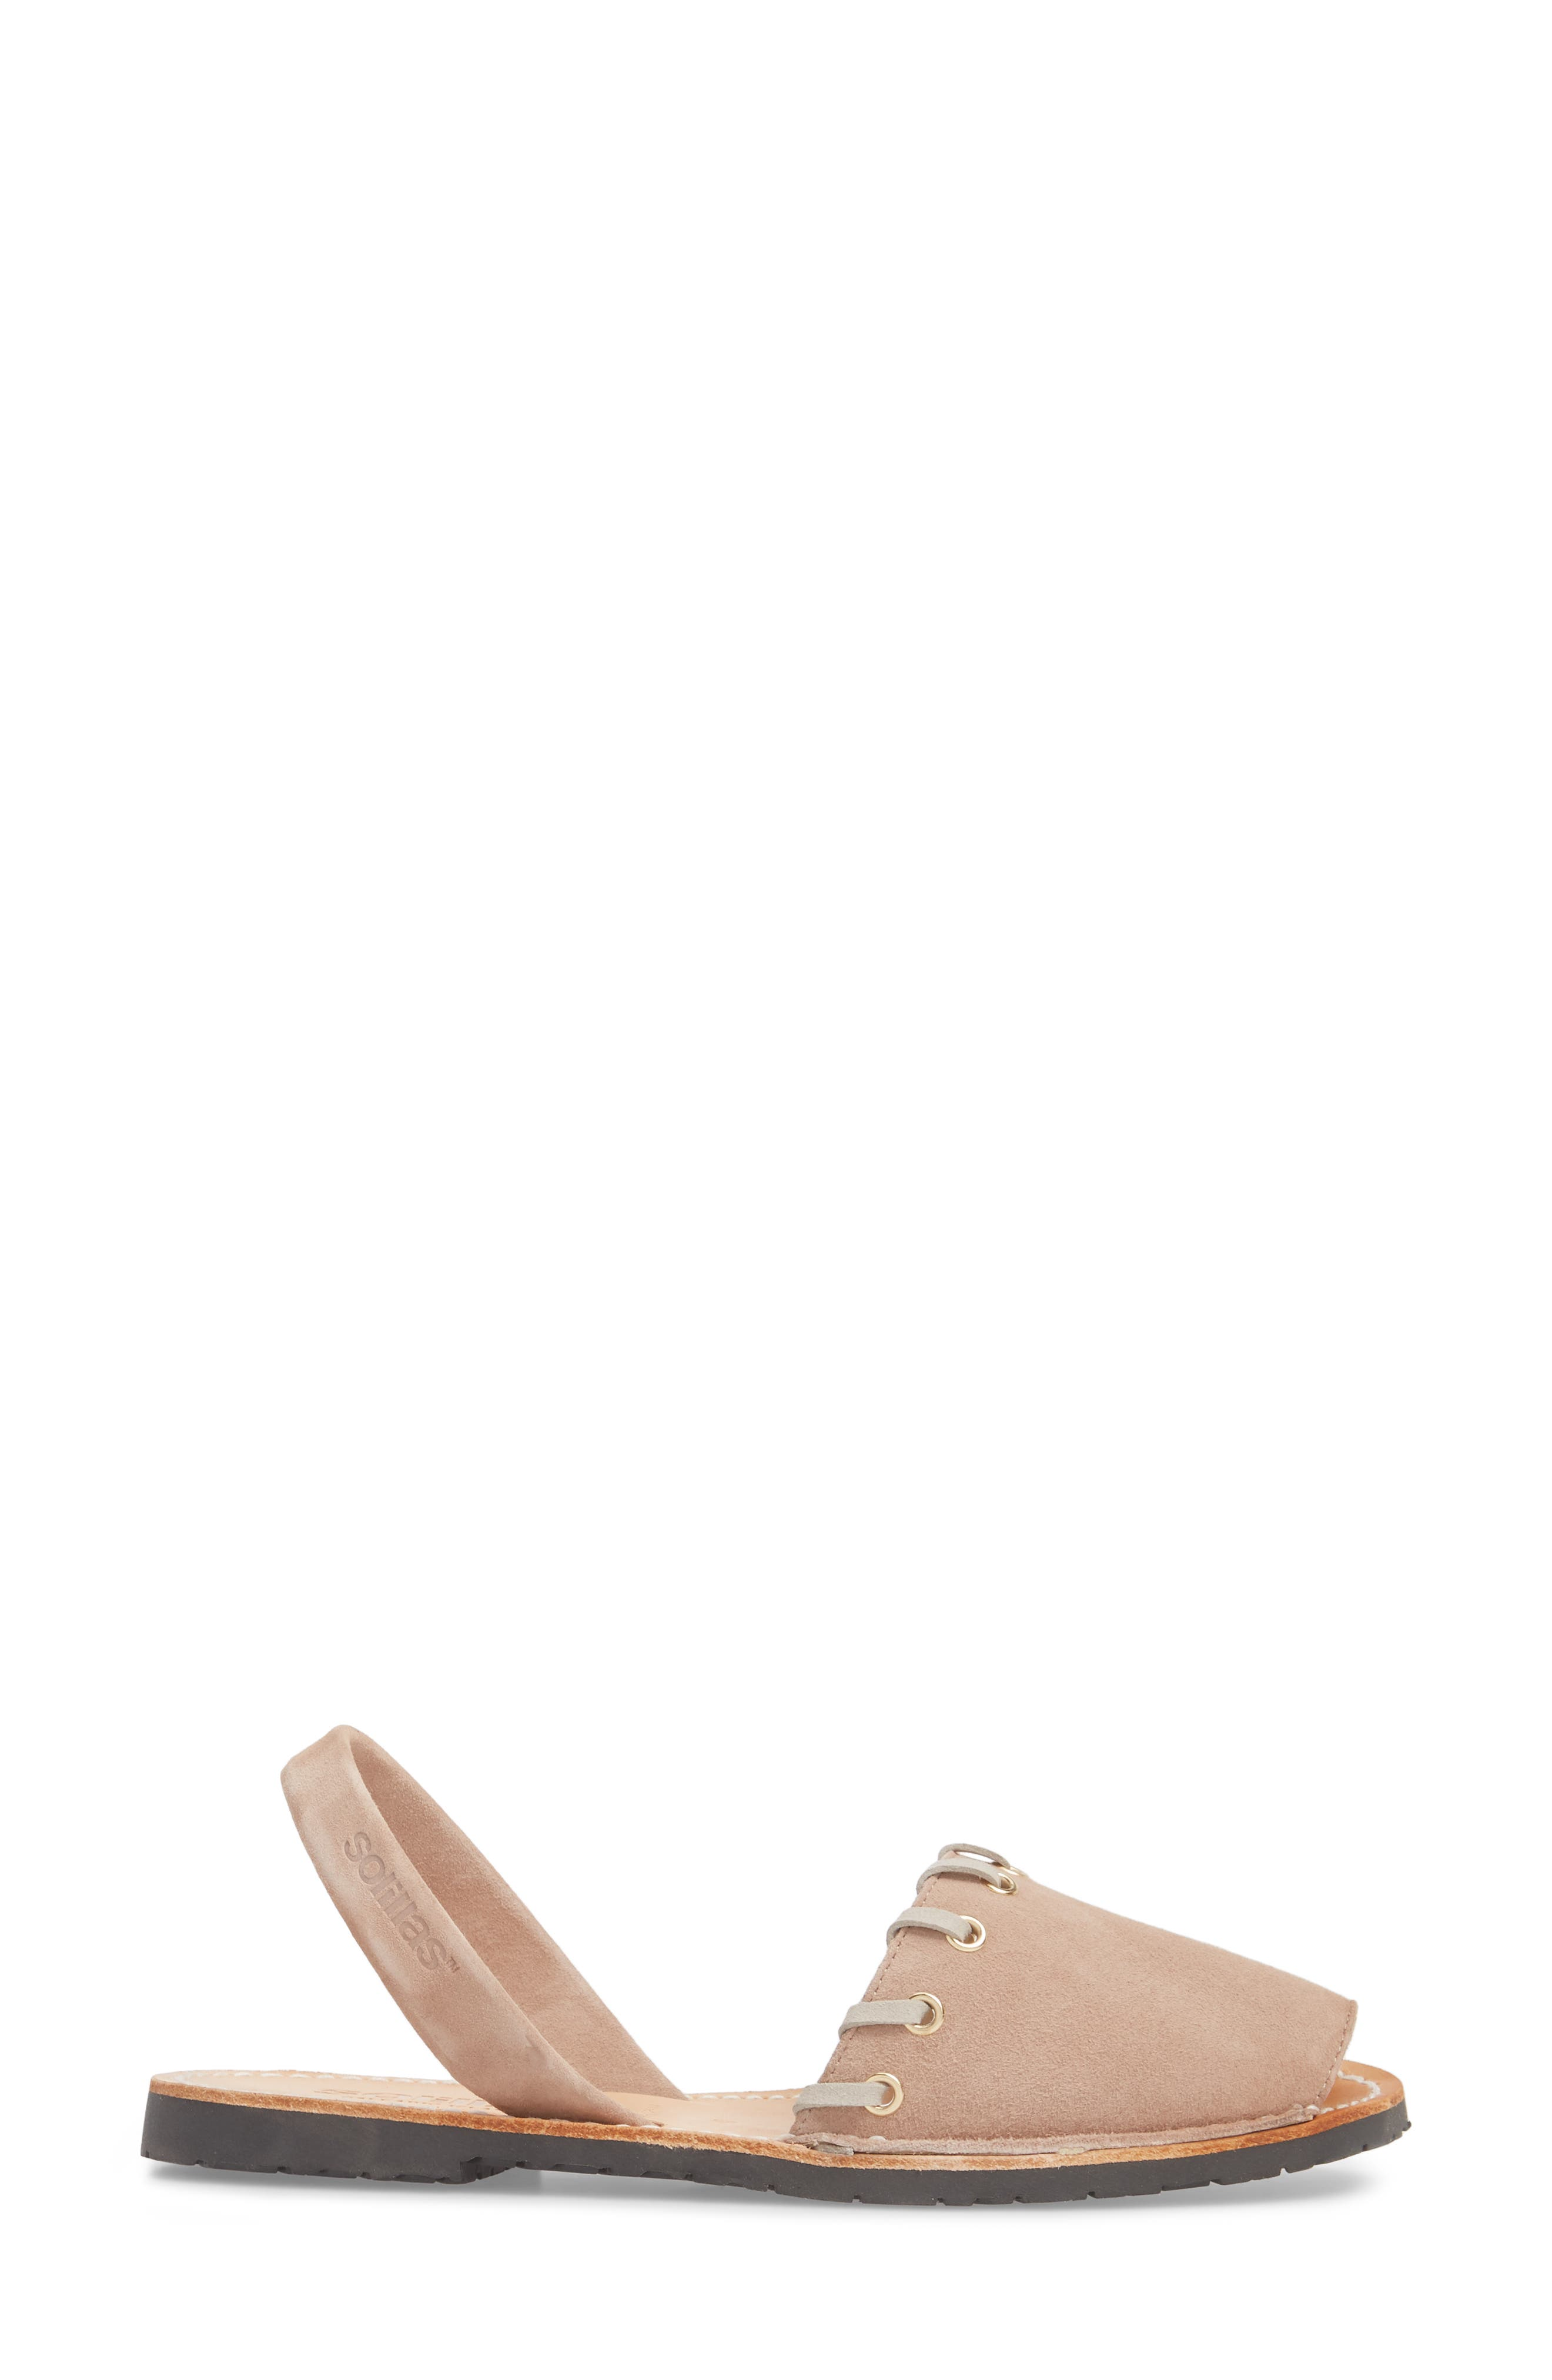 Whipstitched Flat Sandal,                             Alternate thumbnail 5, color,